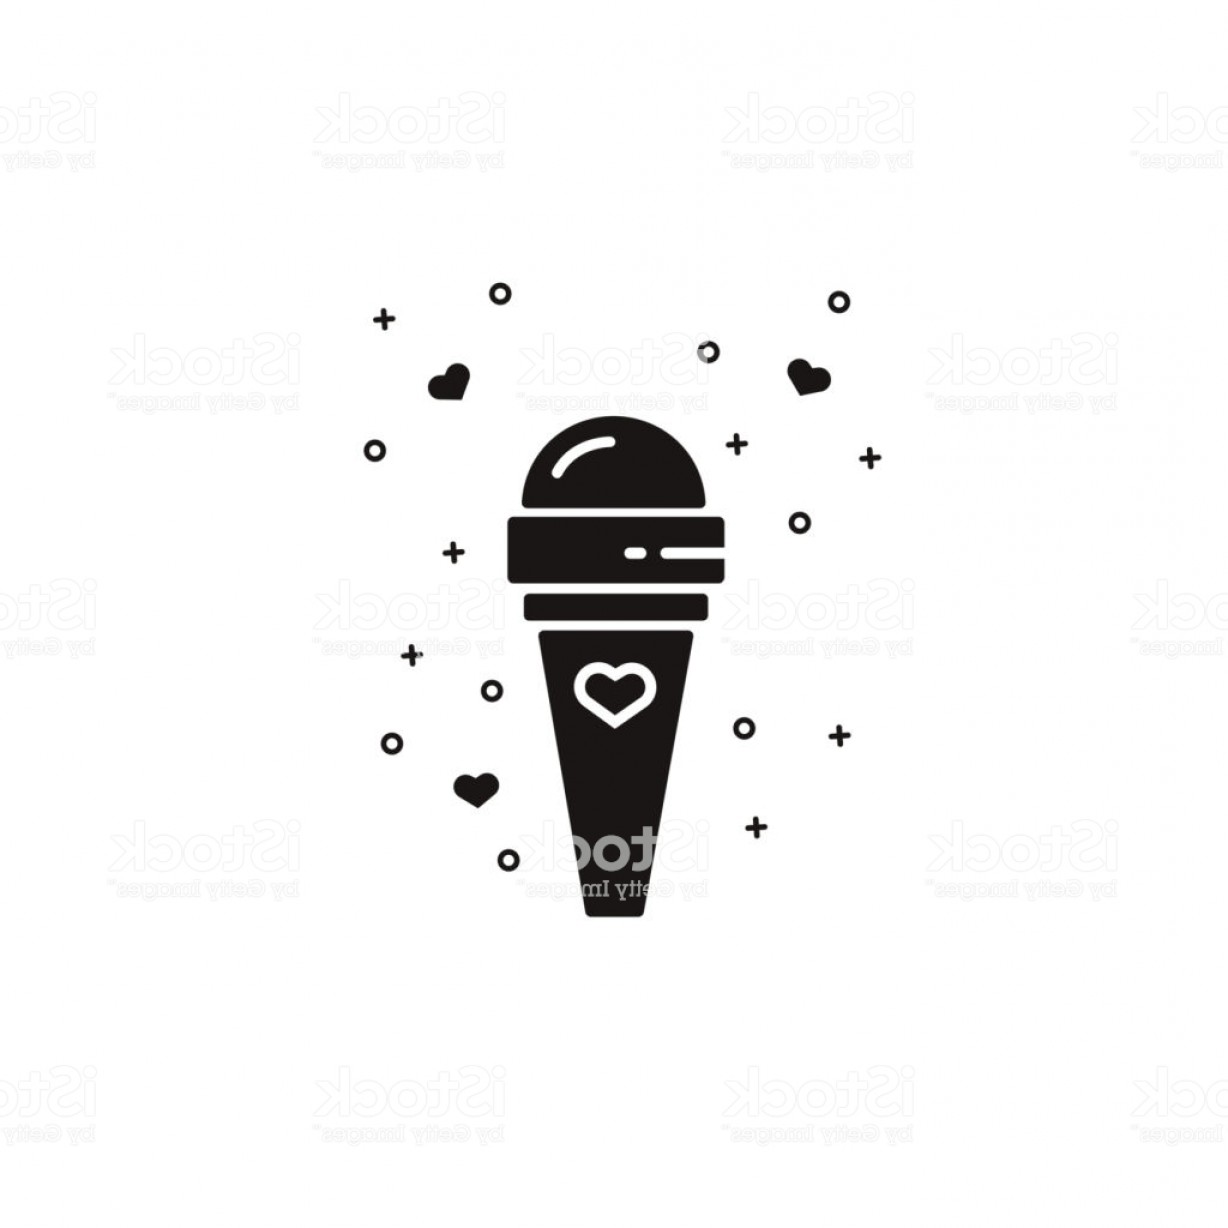 Snow Cone Outline Vector: Ice Cream In A Cone Black Sillhouette Icon On Isolated Background Dairy Dessert Gm